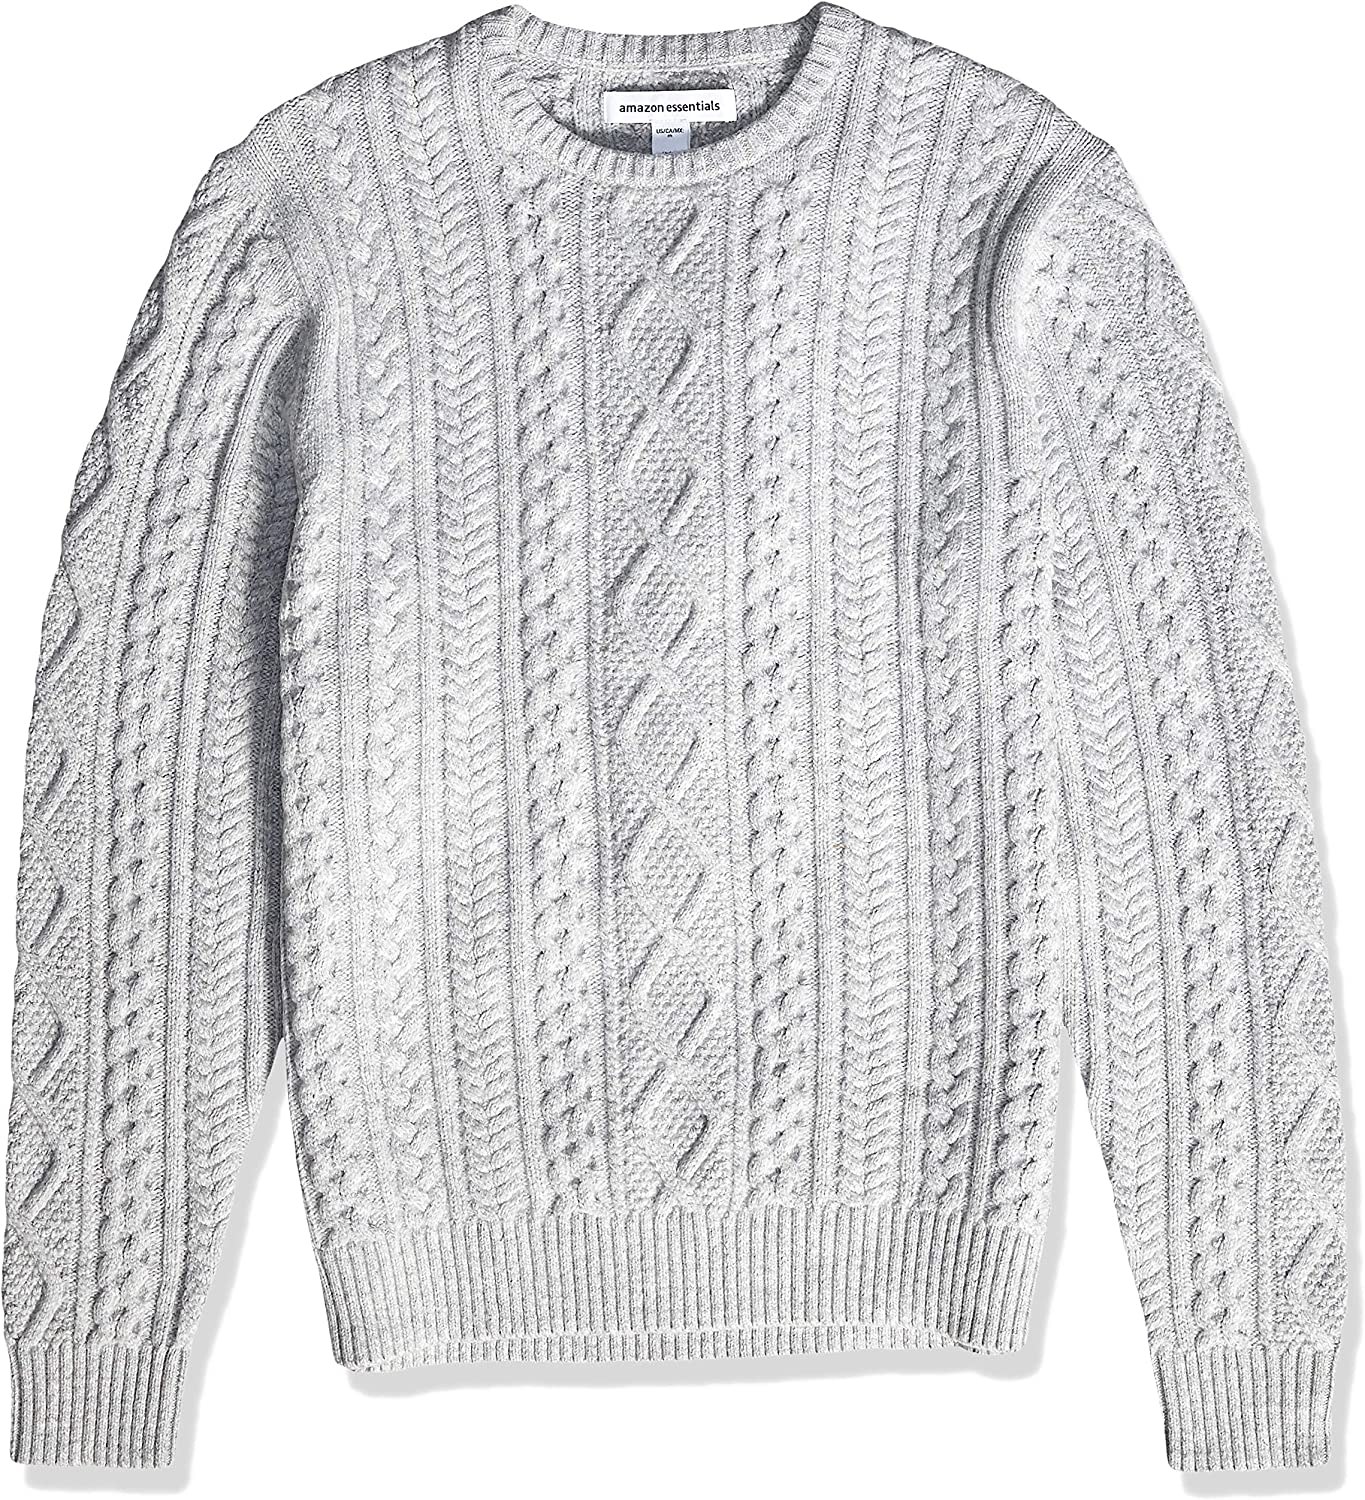 Essentials Mens Midweight Fisherman Sweater